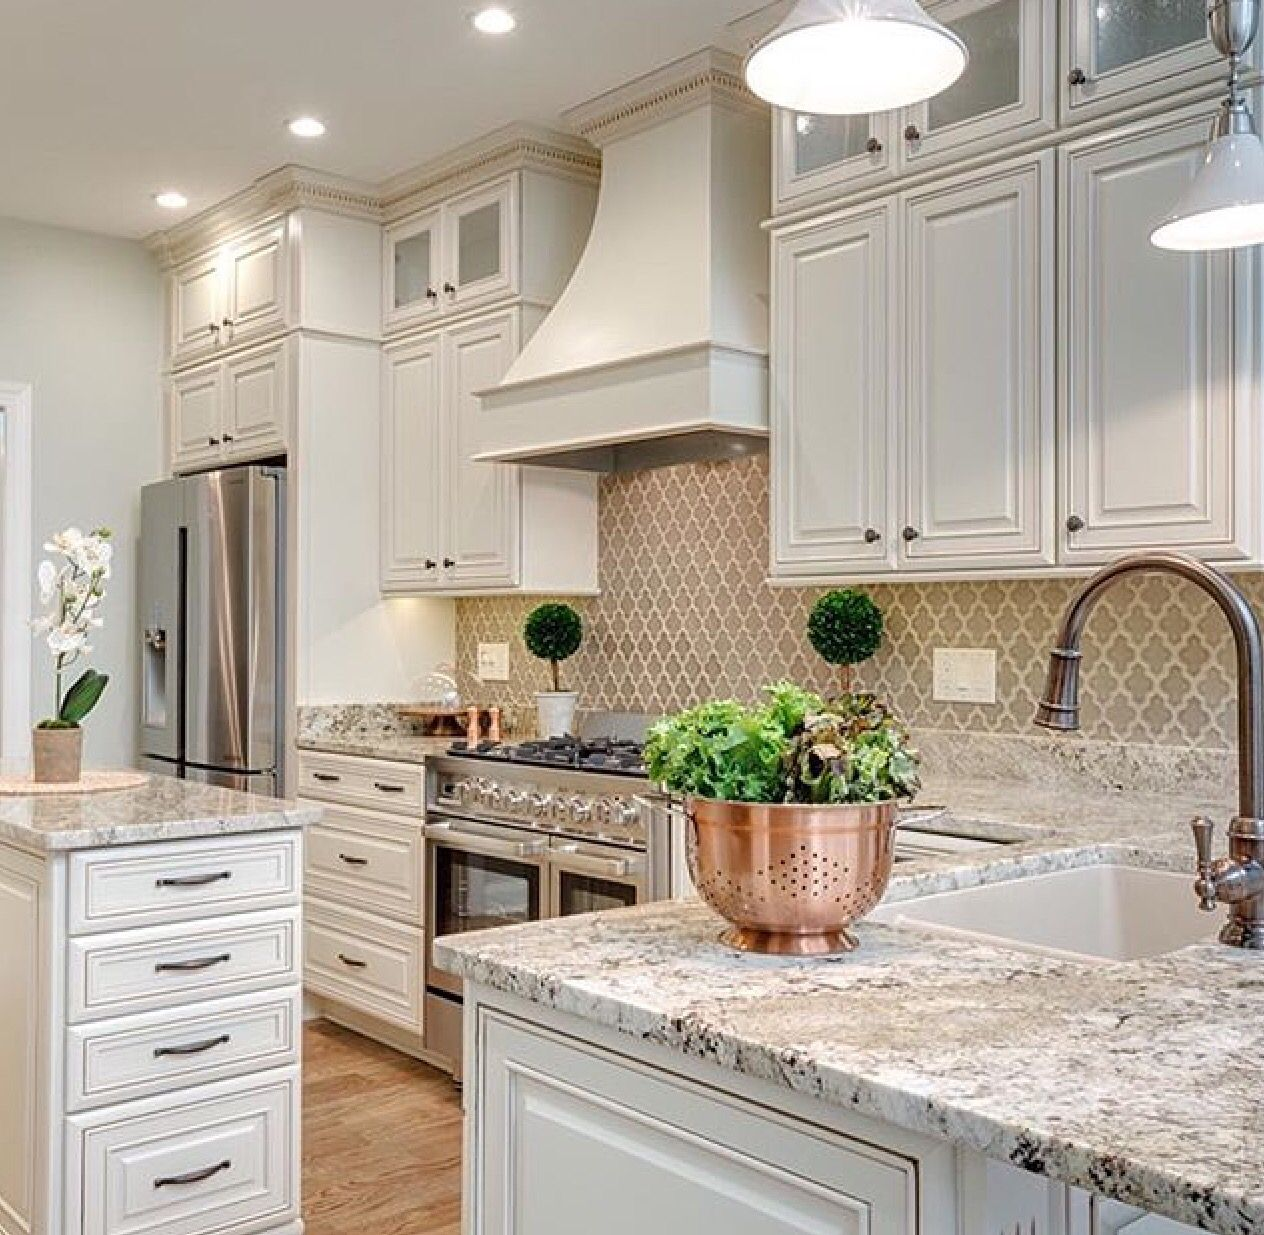 White Kitchen Cabinets And Countertops: A Neutral Colored Kitchen Looks Clean And Fresh. The